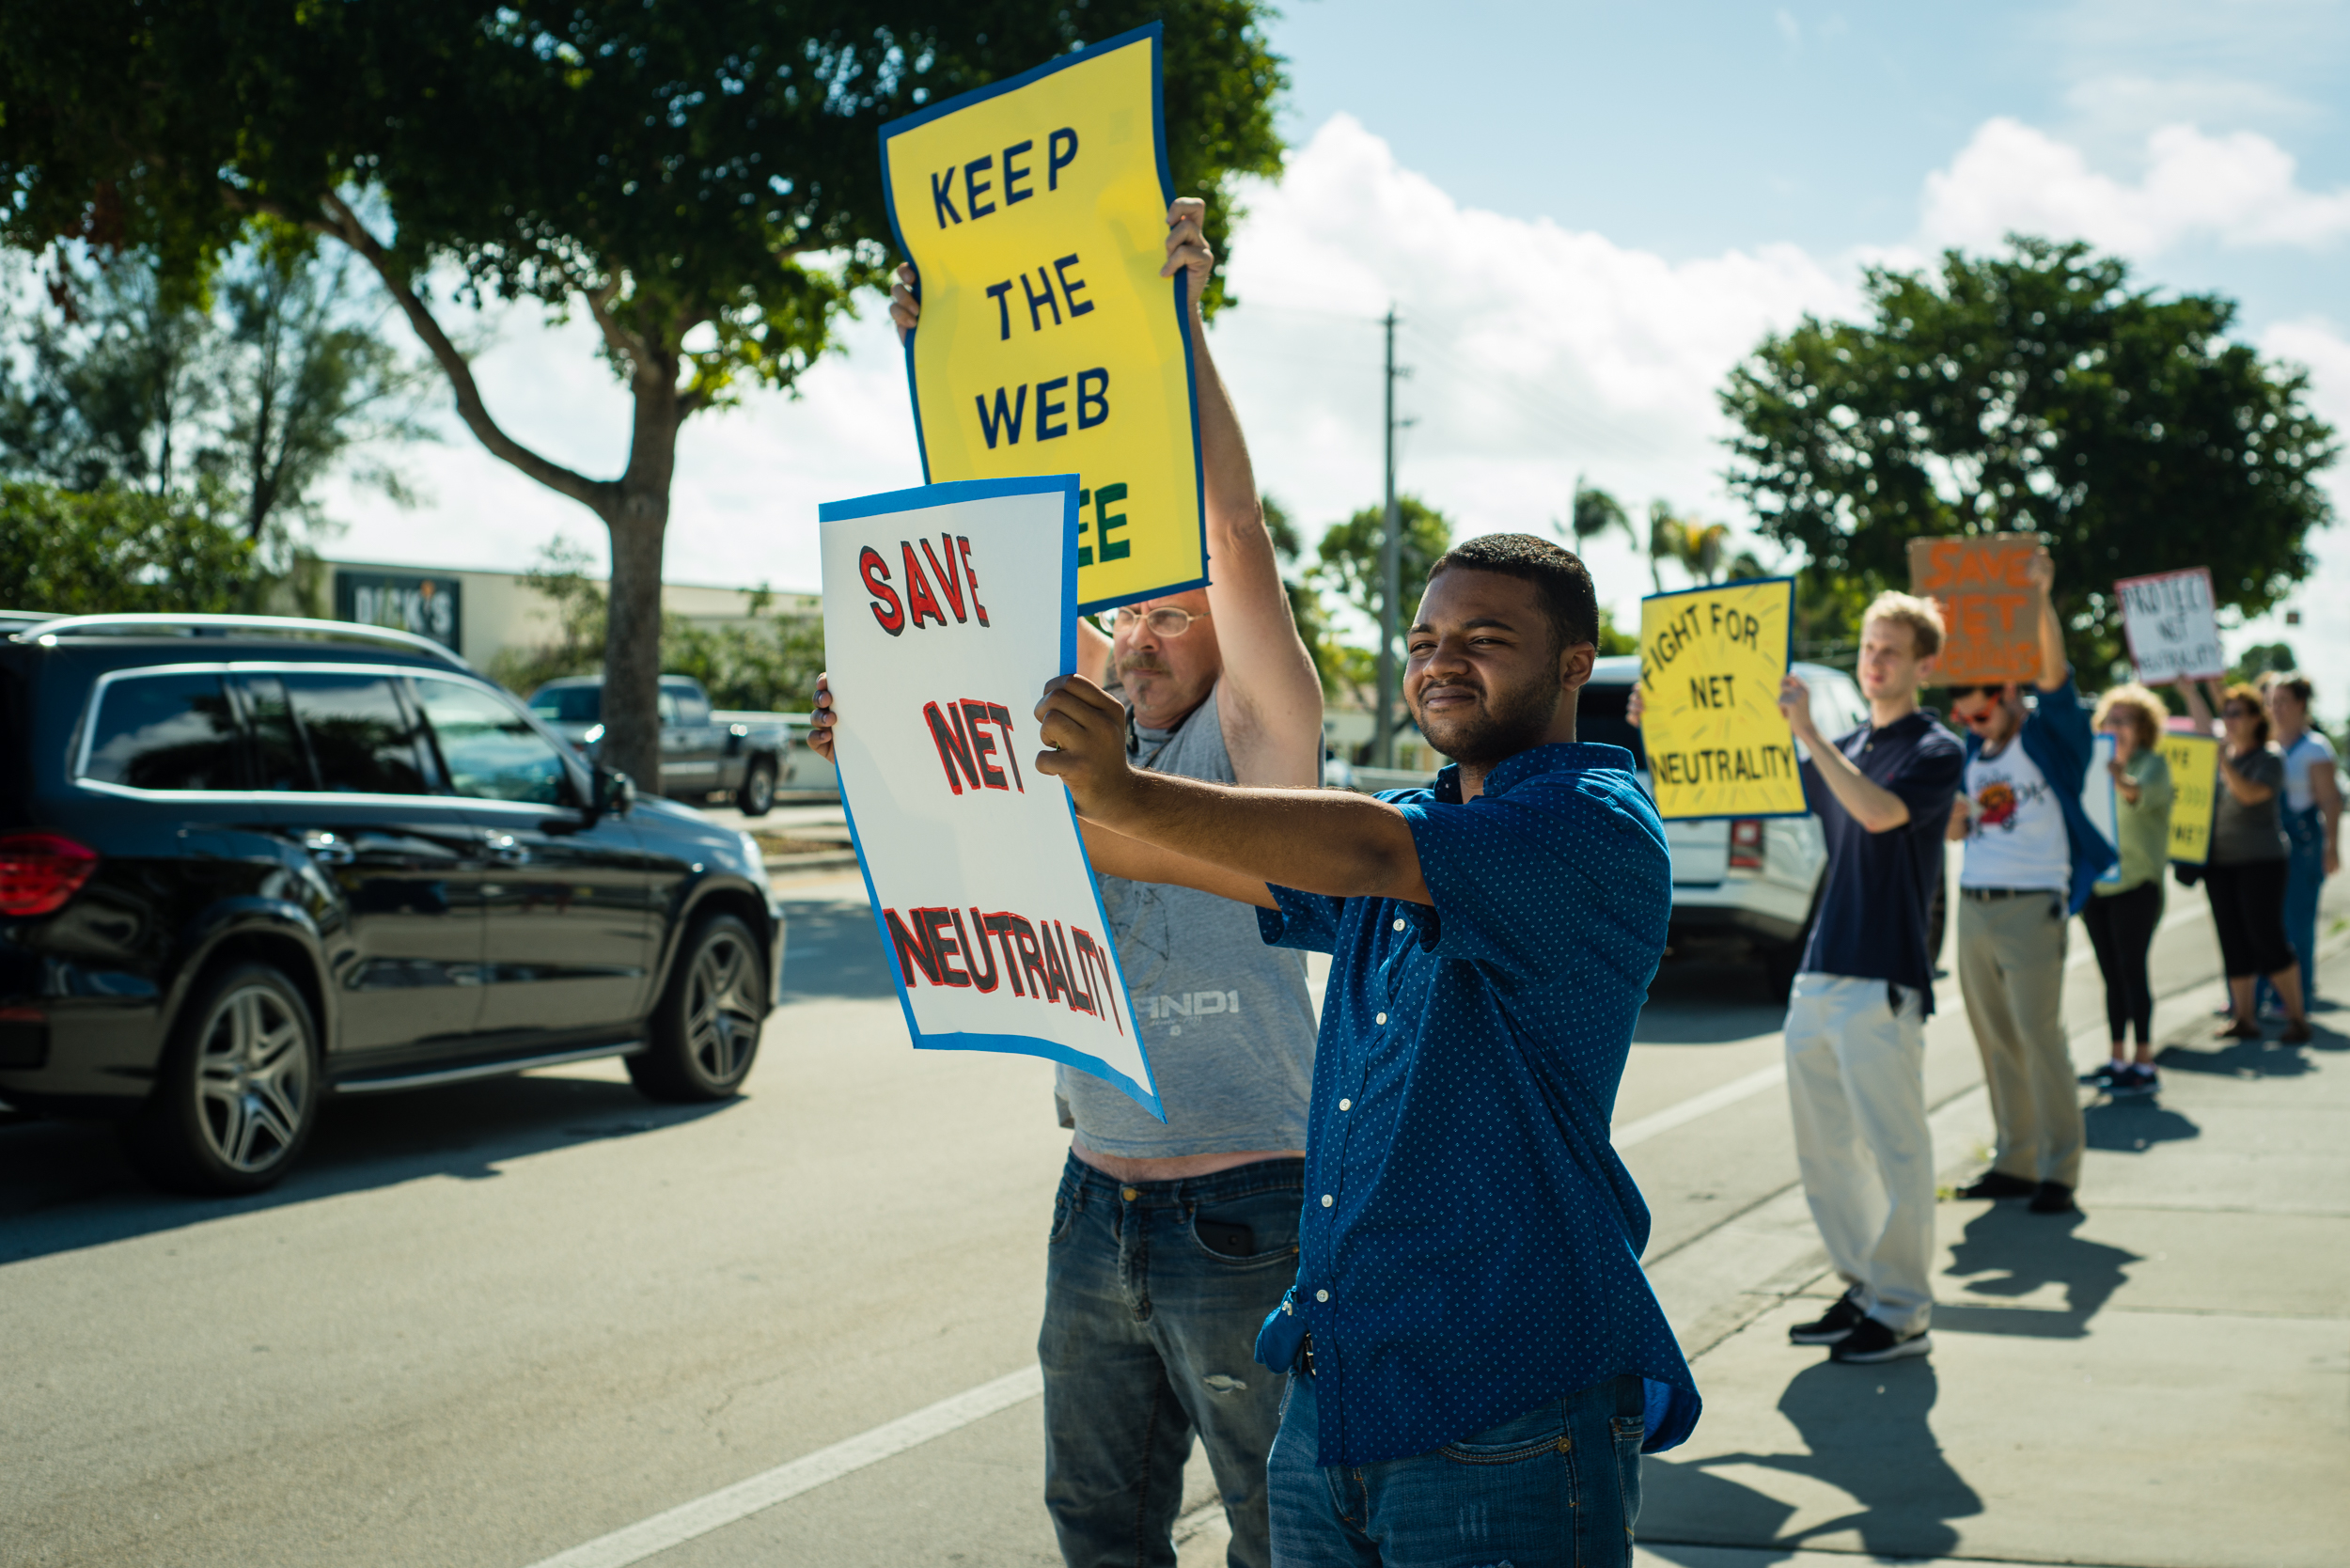 Activists with Team Internet protest to save net neutrality